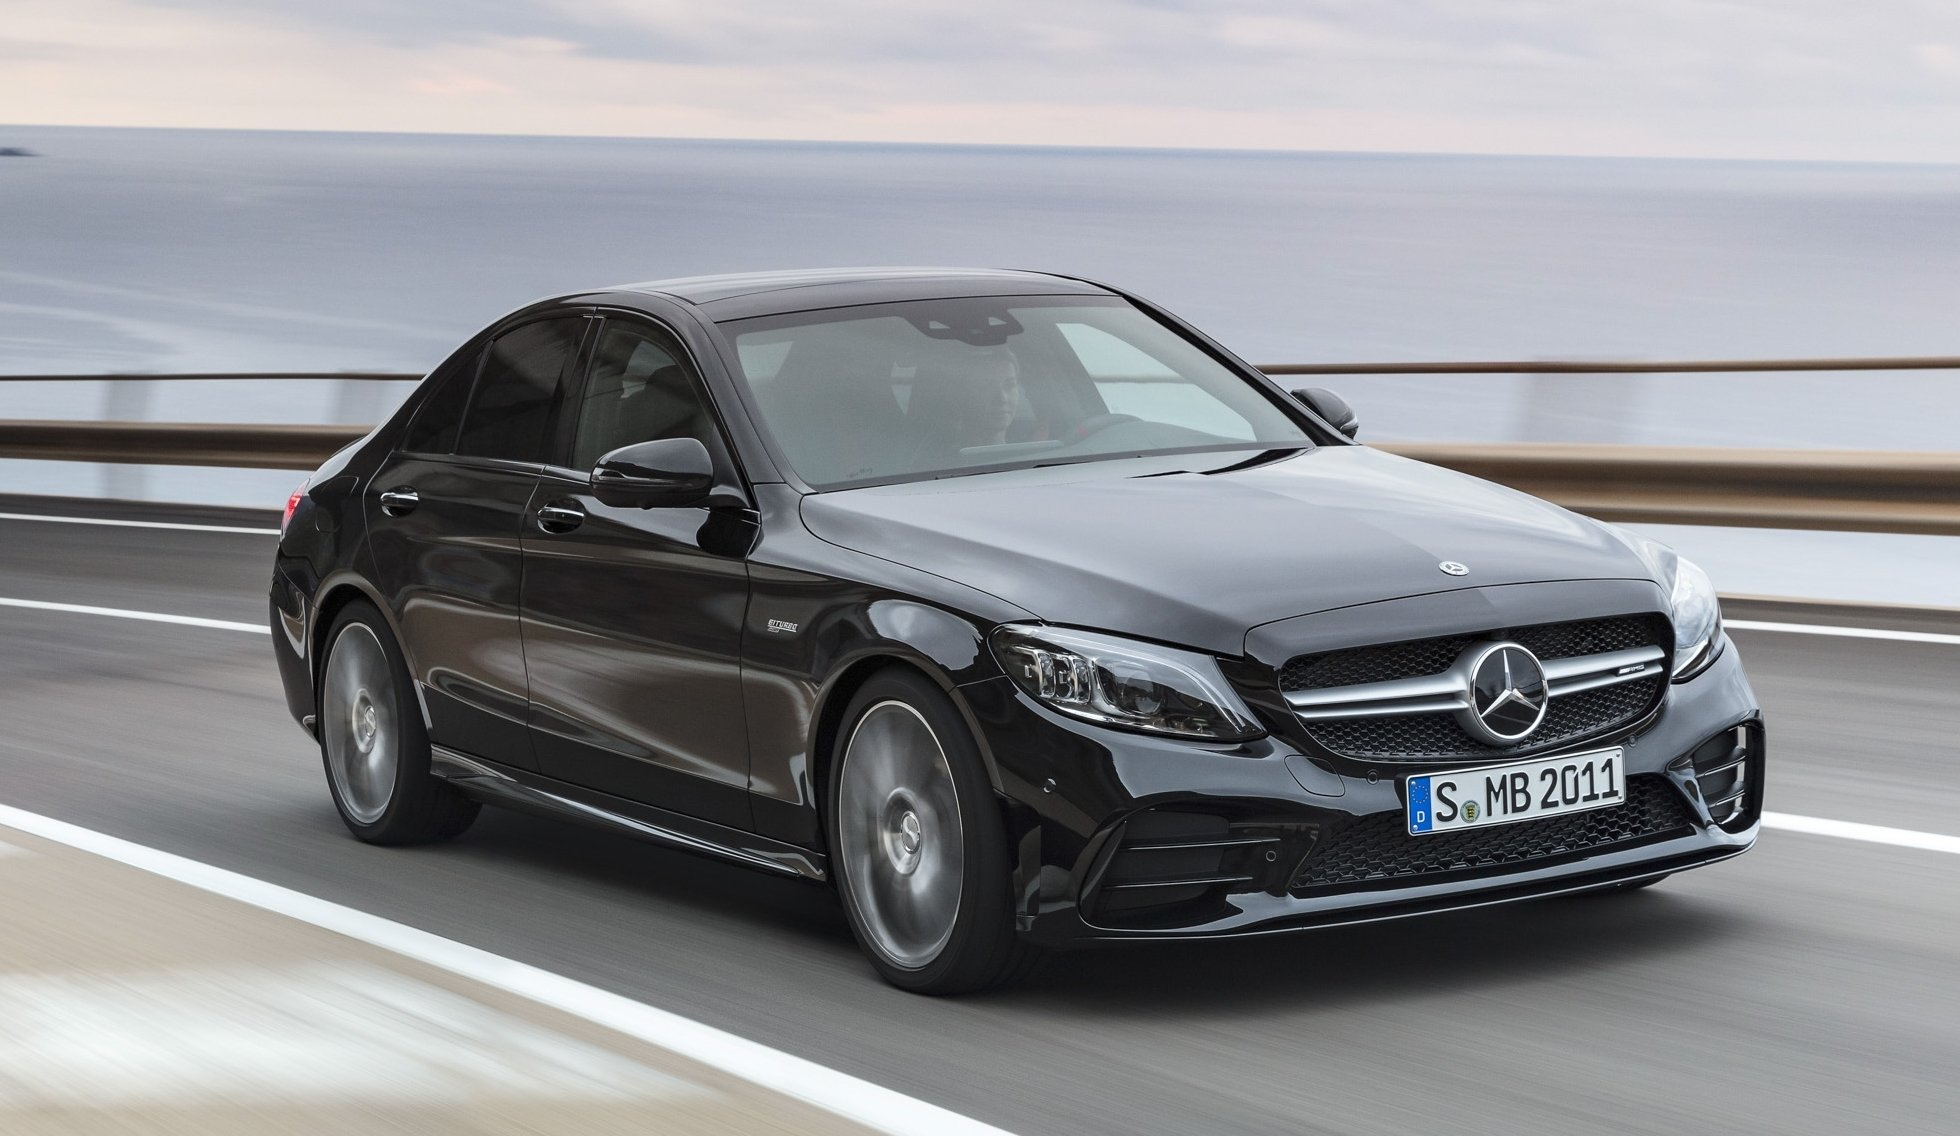 2019 mercedes amg c43 debuts in geneva and it s a classic mercedes refresh vehicle traveller. Black Bedroom Furniture Sets. Home Design Ideas